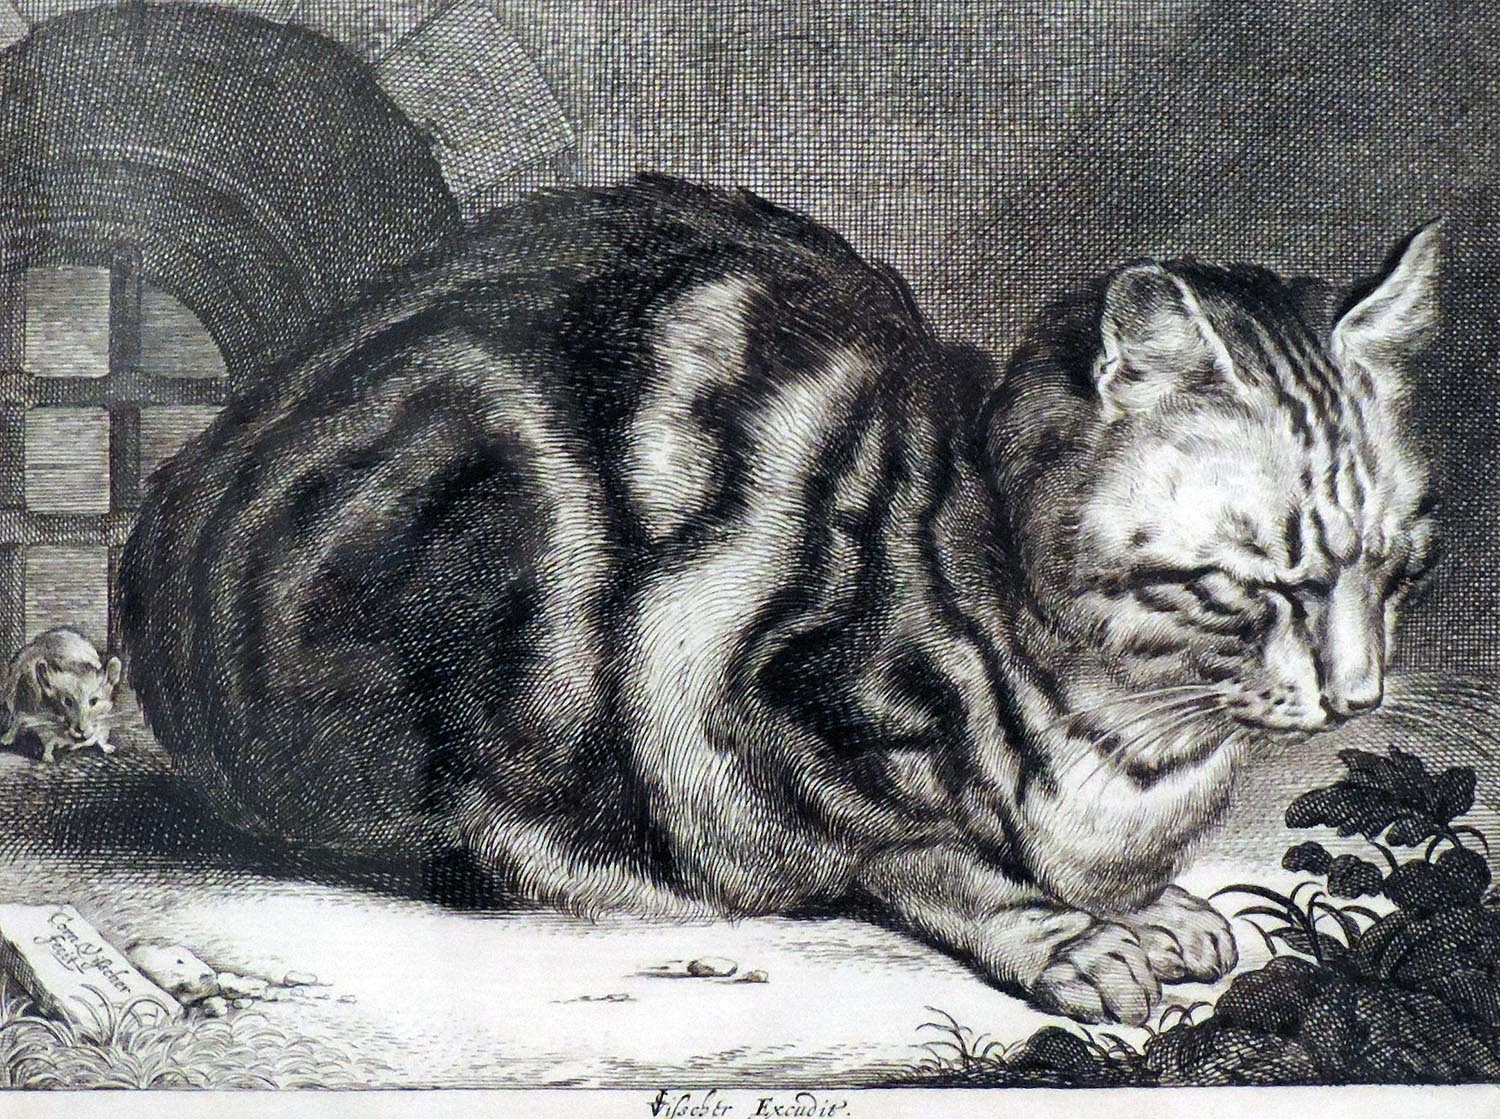 Cornelis de Visscher, aka Cornelis Visscher the Younger (Dutch, ca. 1629–1658). Cat Asleep, 17th century.